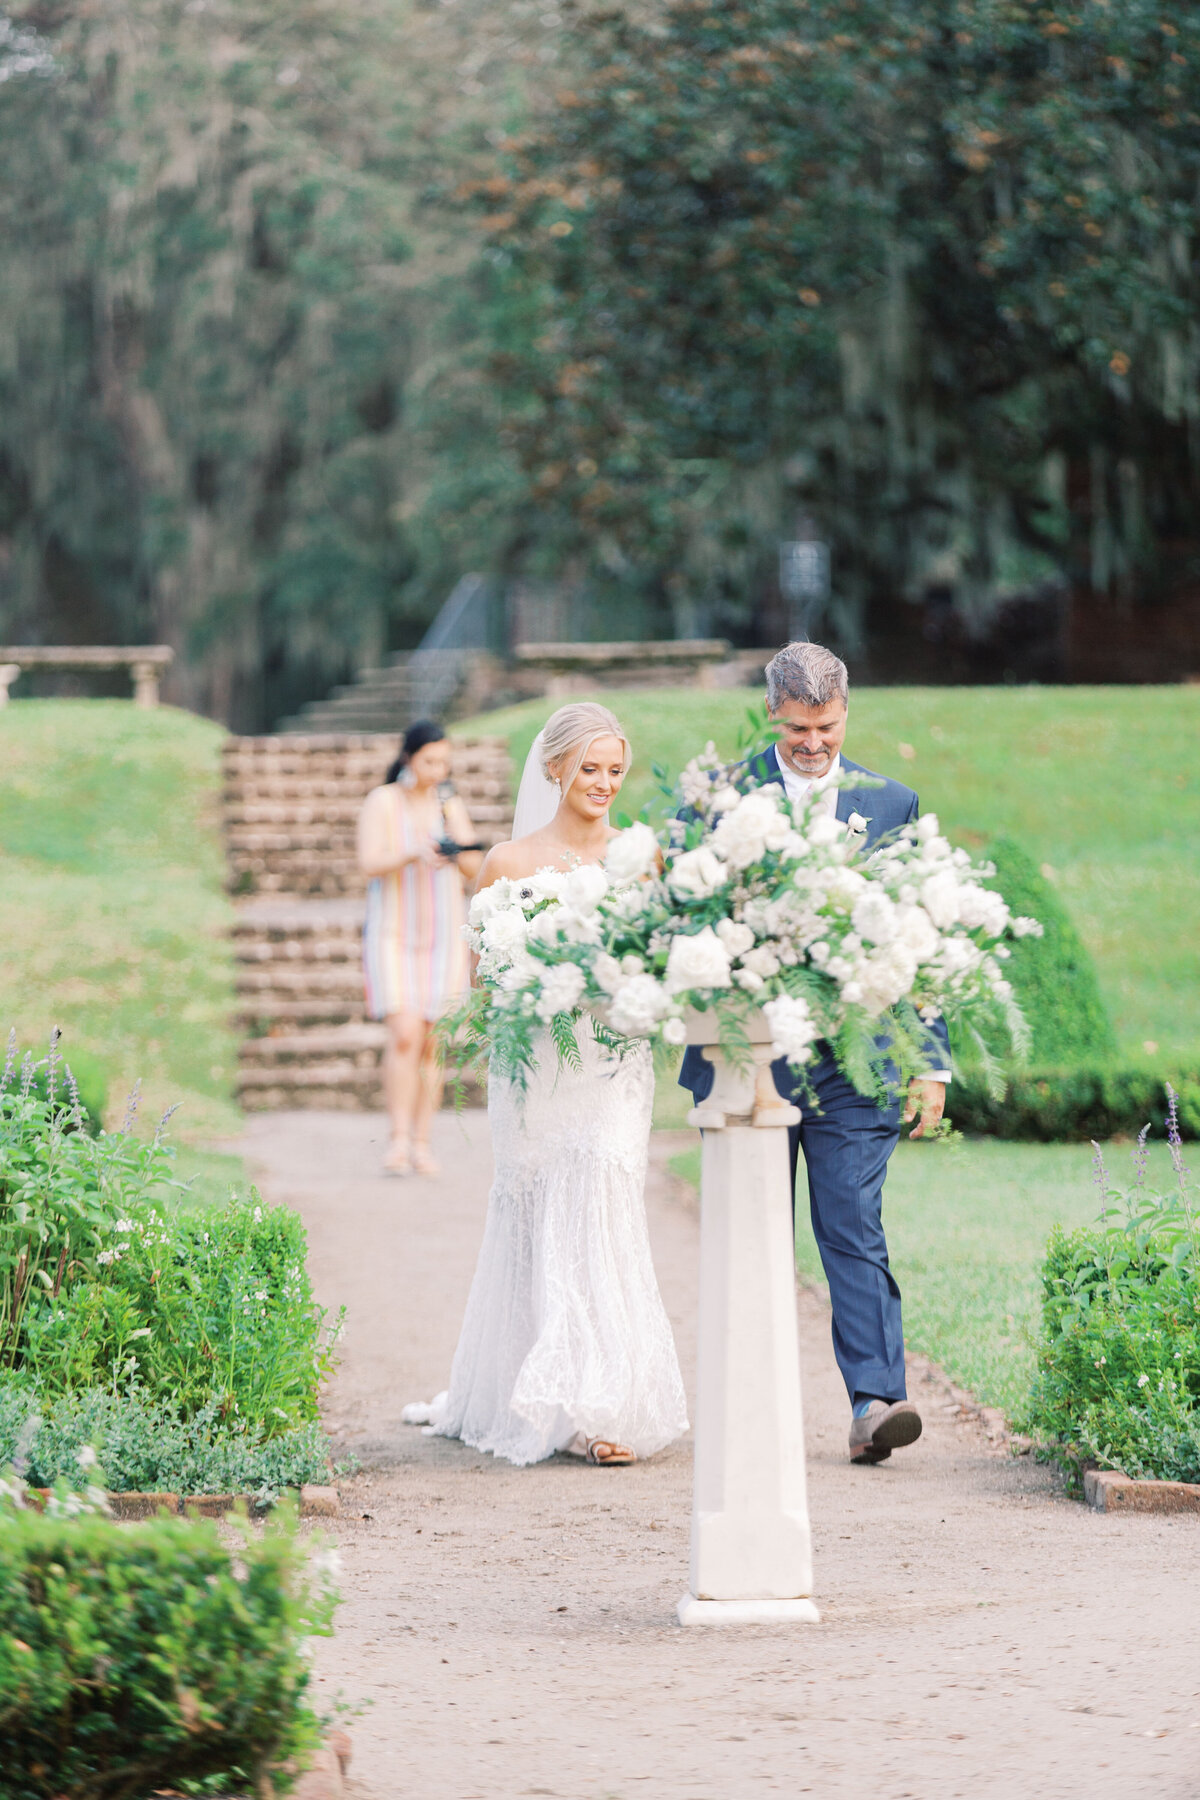 Melton_Wedding__Middleton_Place_Plantation_Charleston_South_Carolina_Jacksonville_Florida_Devon_Donnahoo_Photography__0559